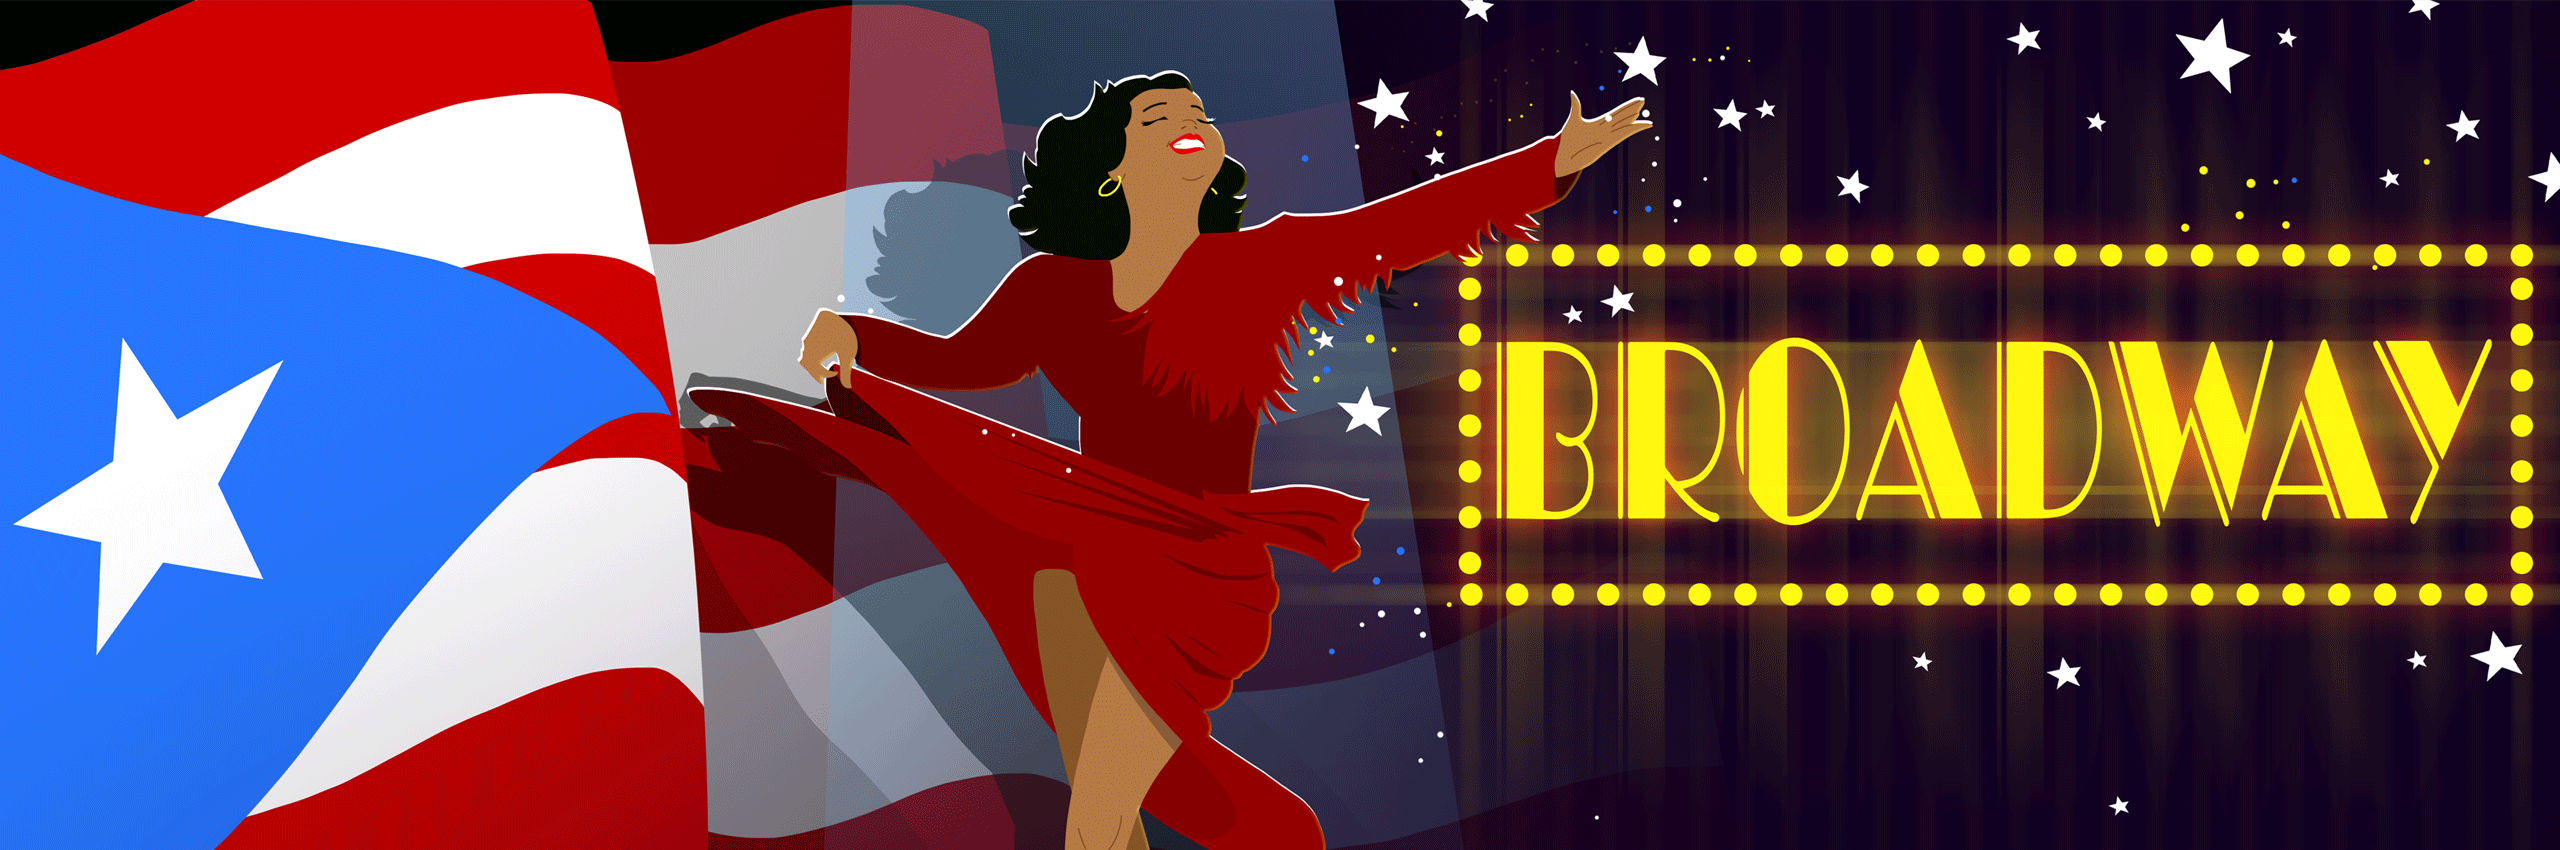 Woman in red dress with Puerto Rican Flag and Broadway sign